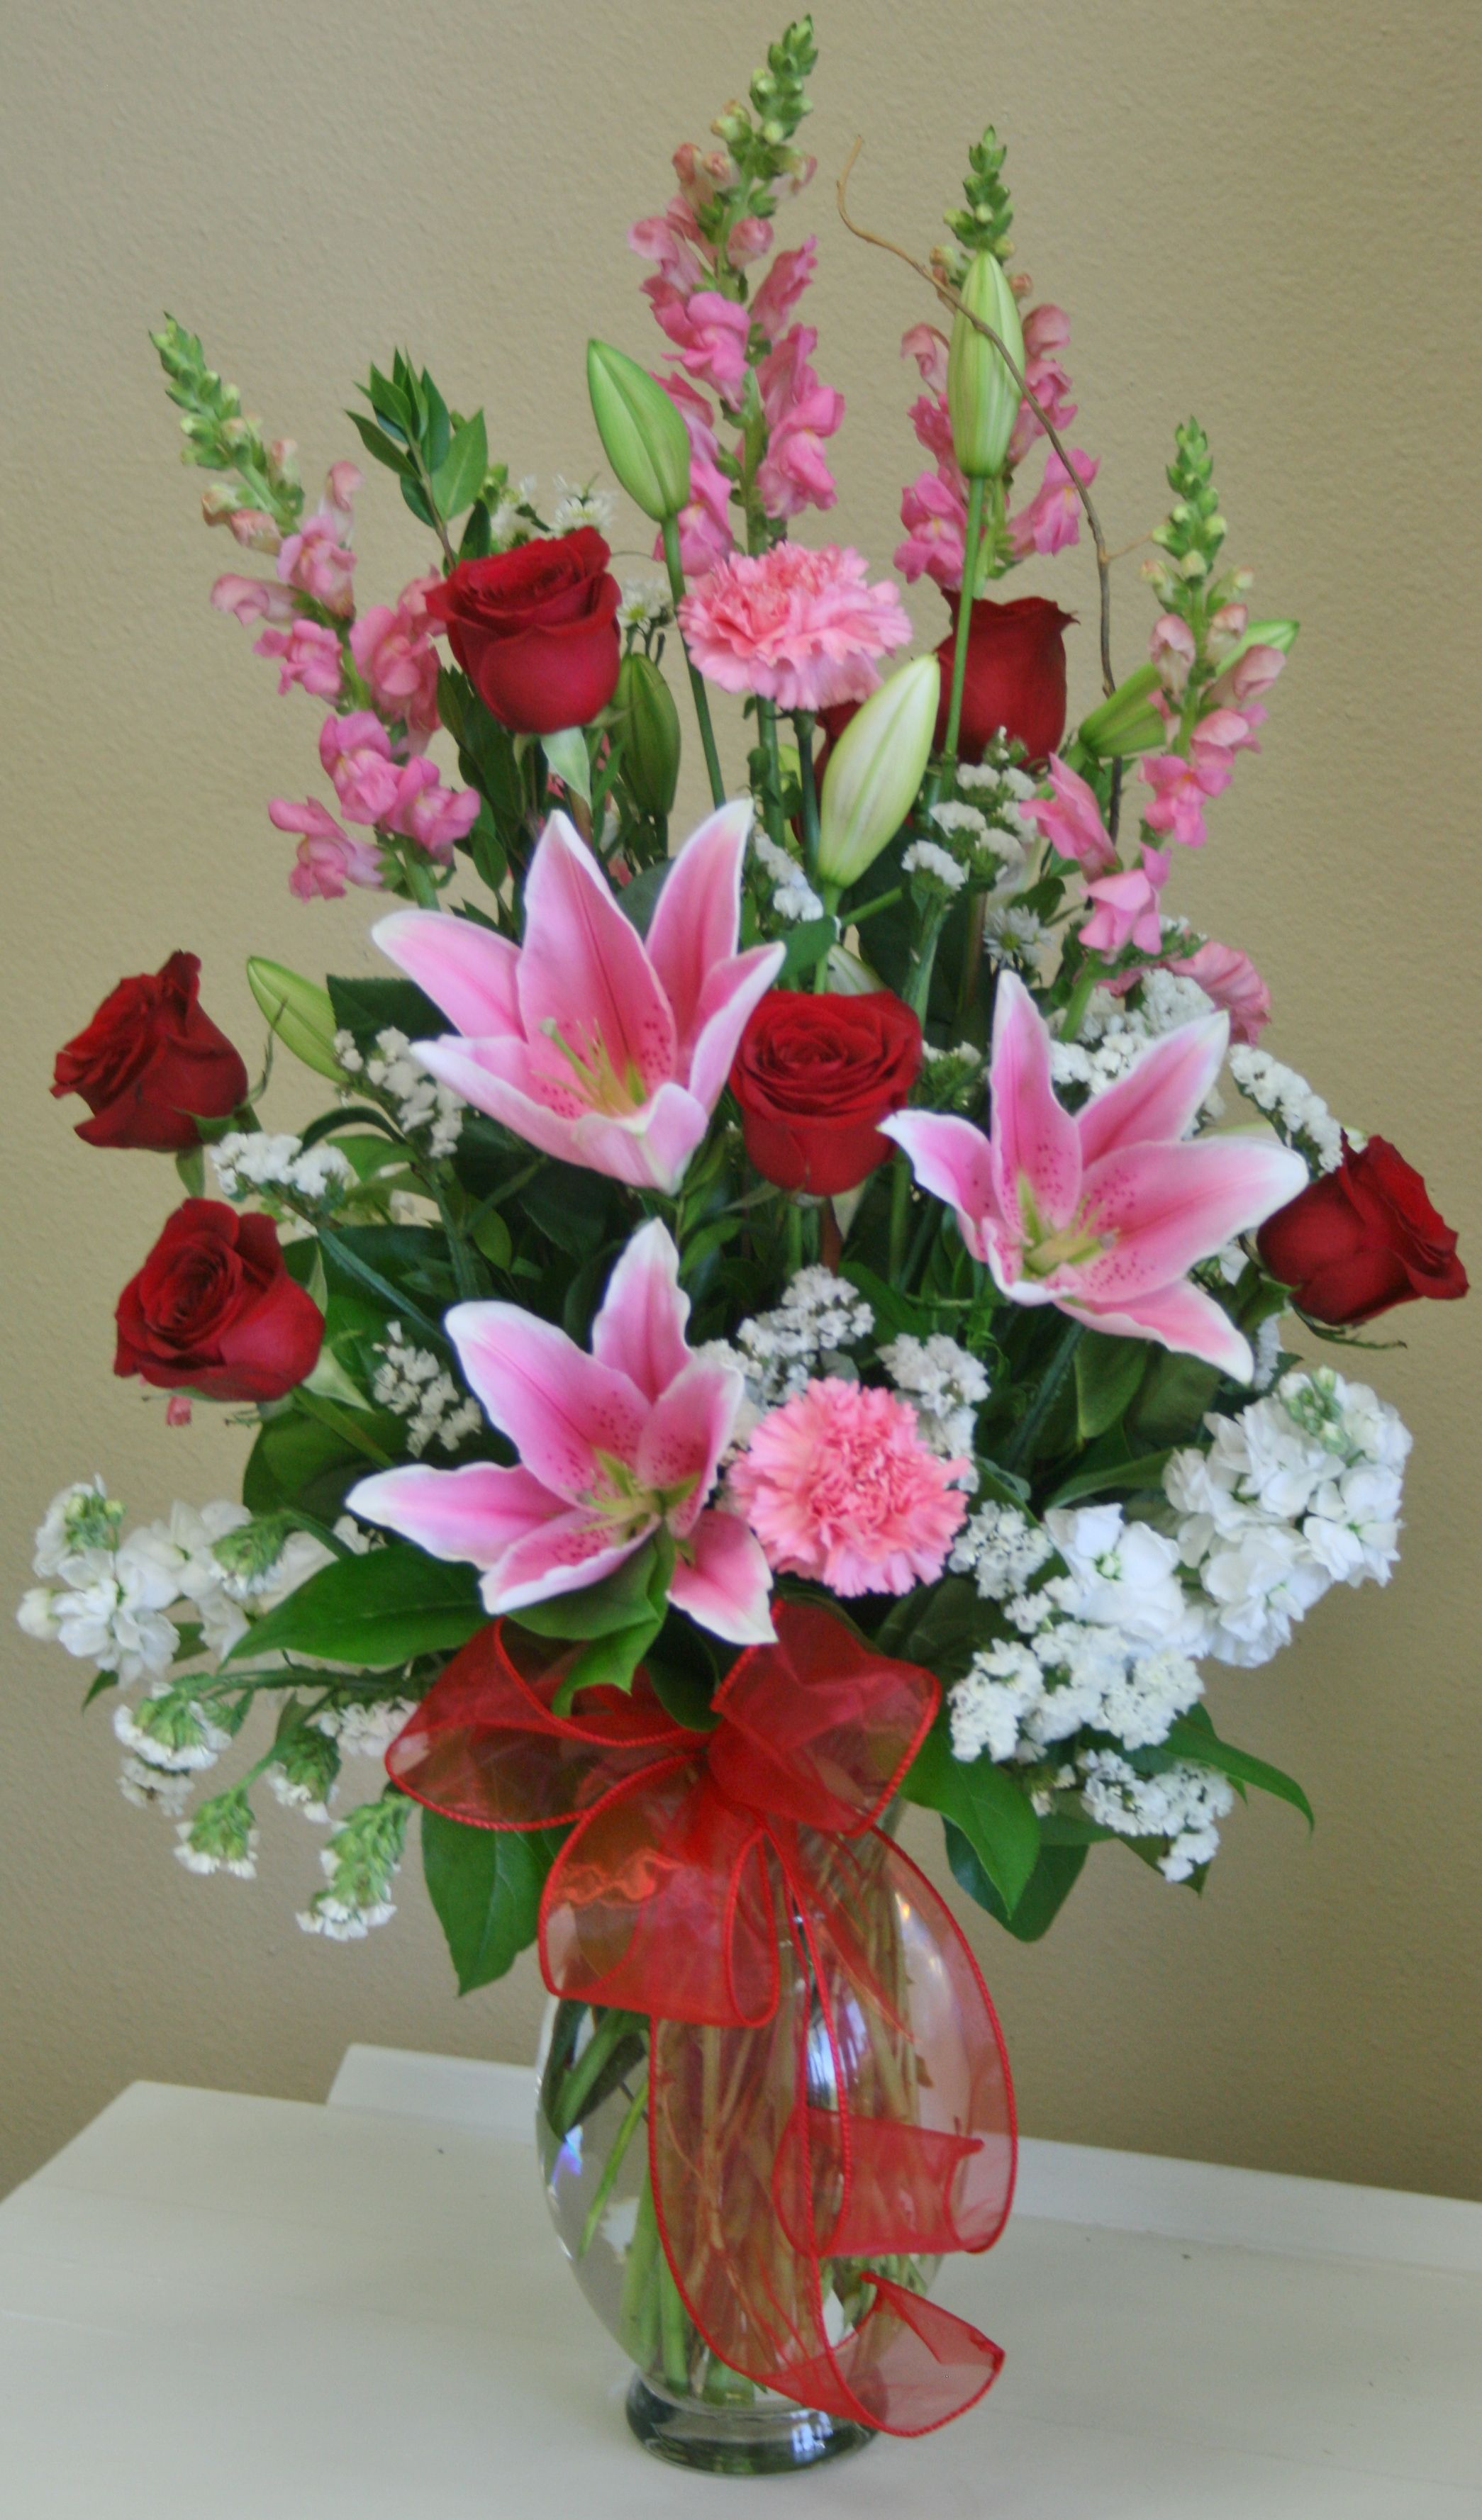 A romantic red, white and pink flower arrangement by your